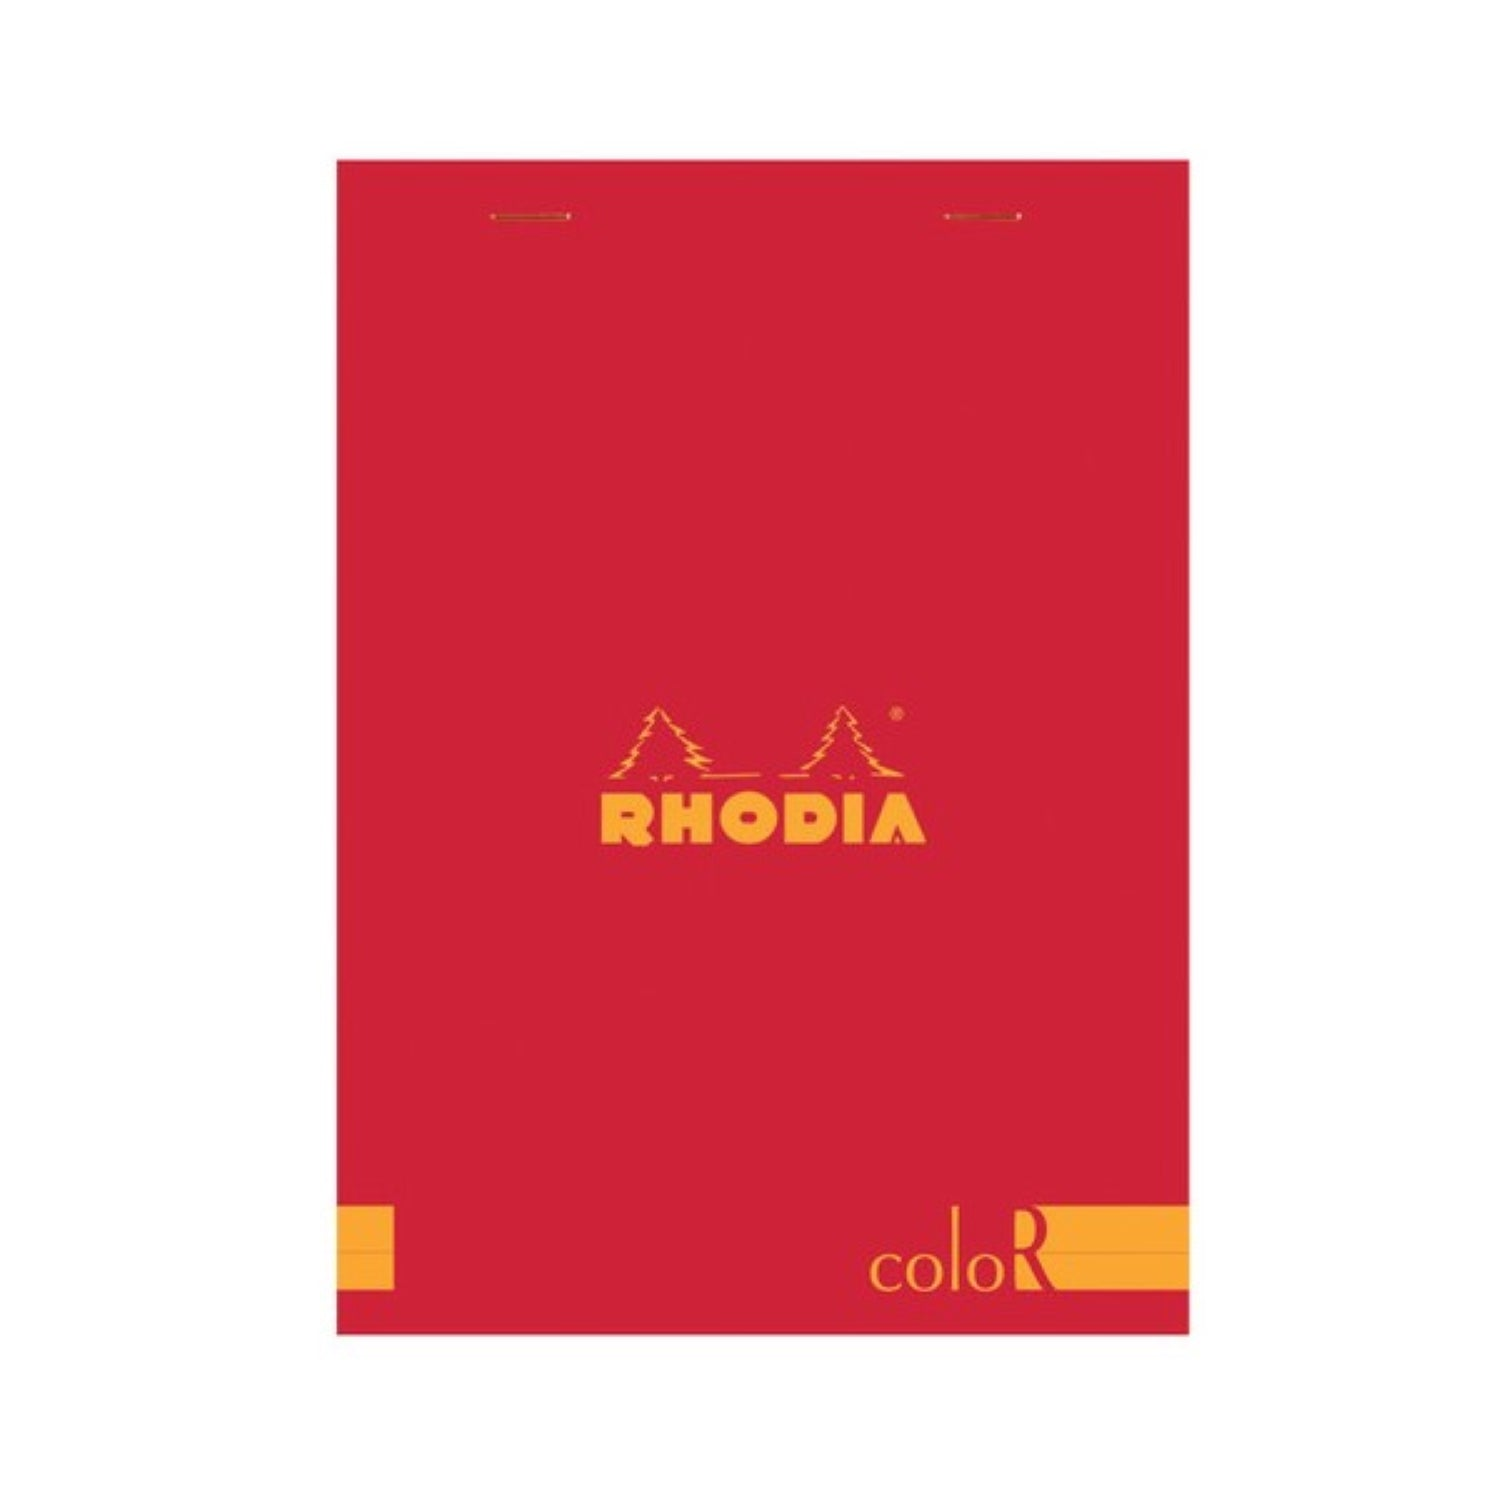 RHODIA PAD 16 R PREMIUM Poppy Red Cover RULED